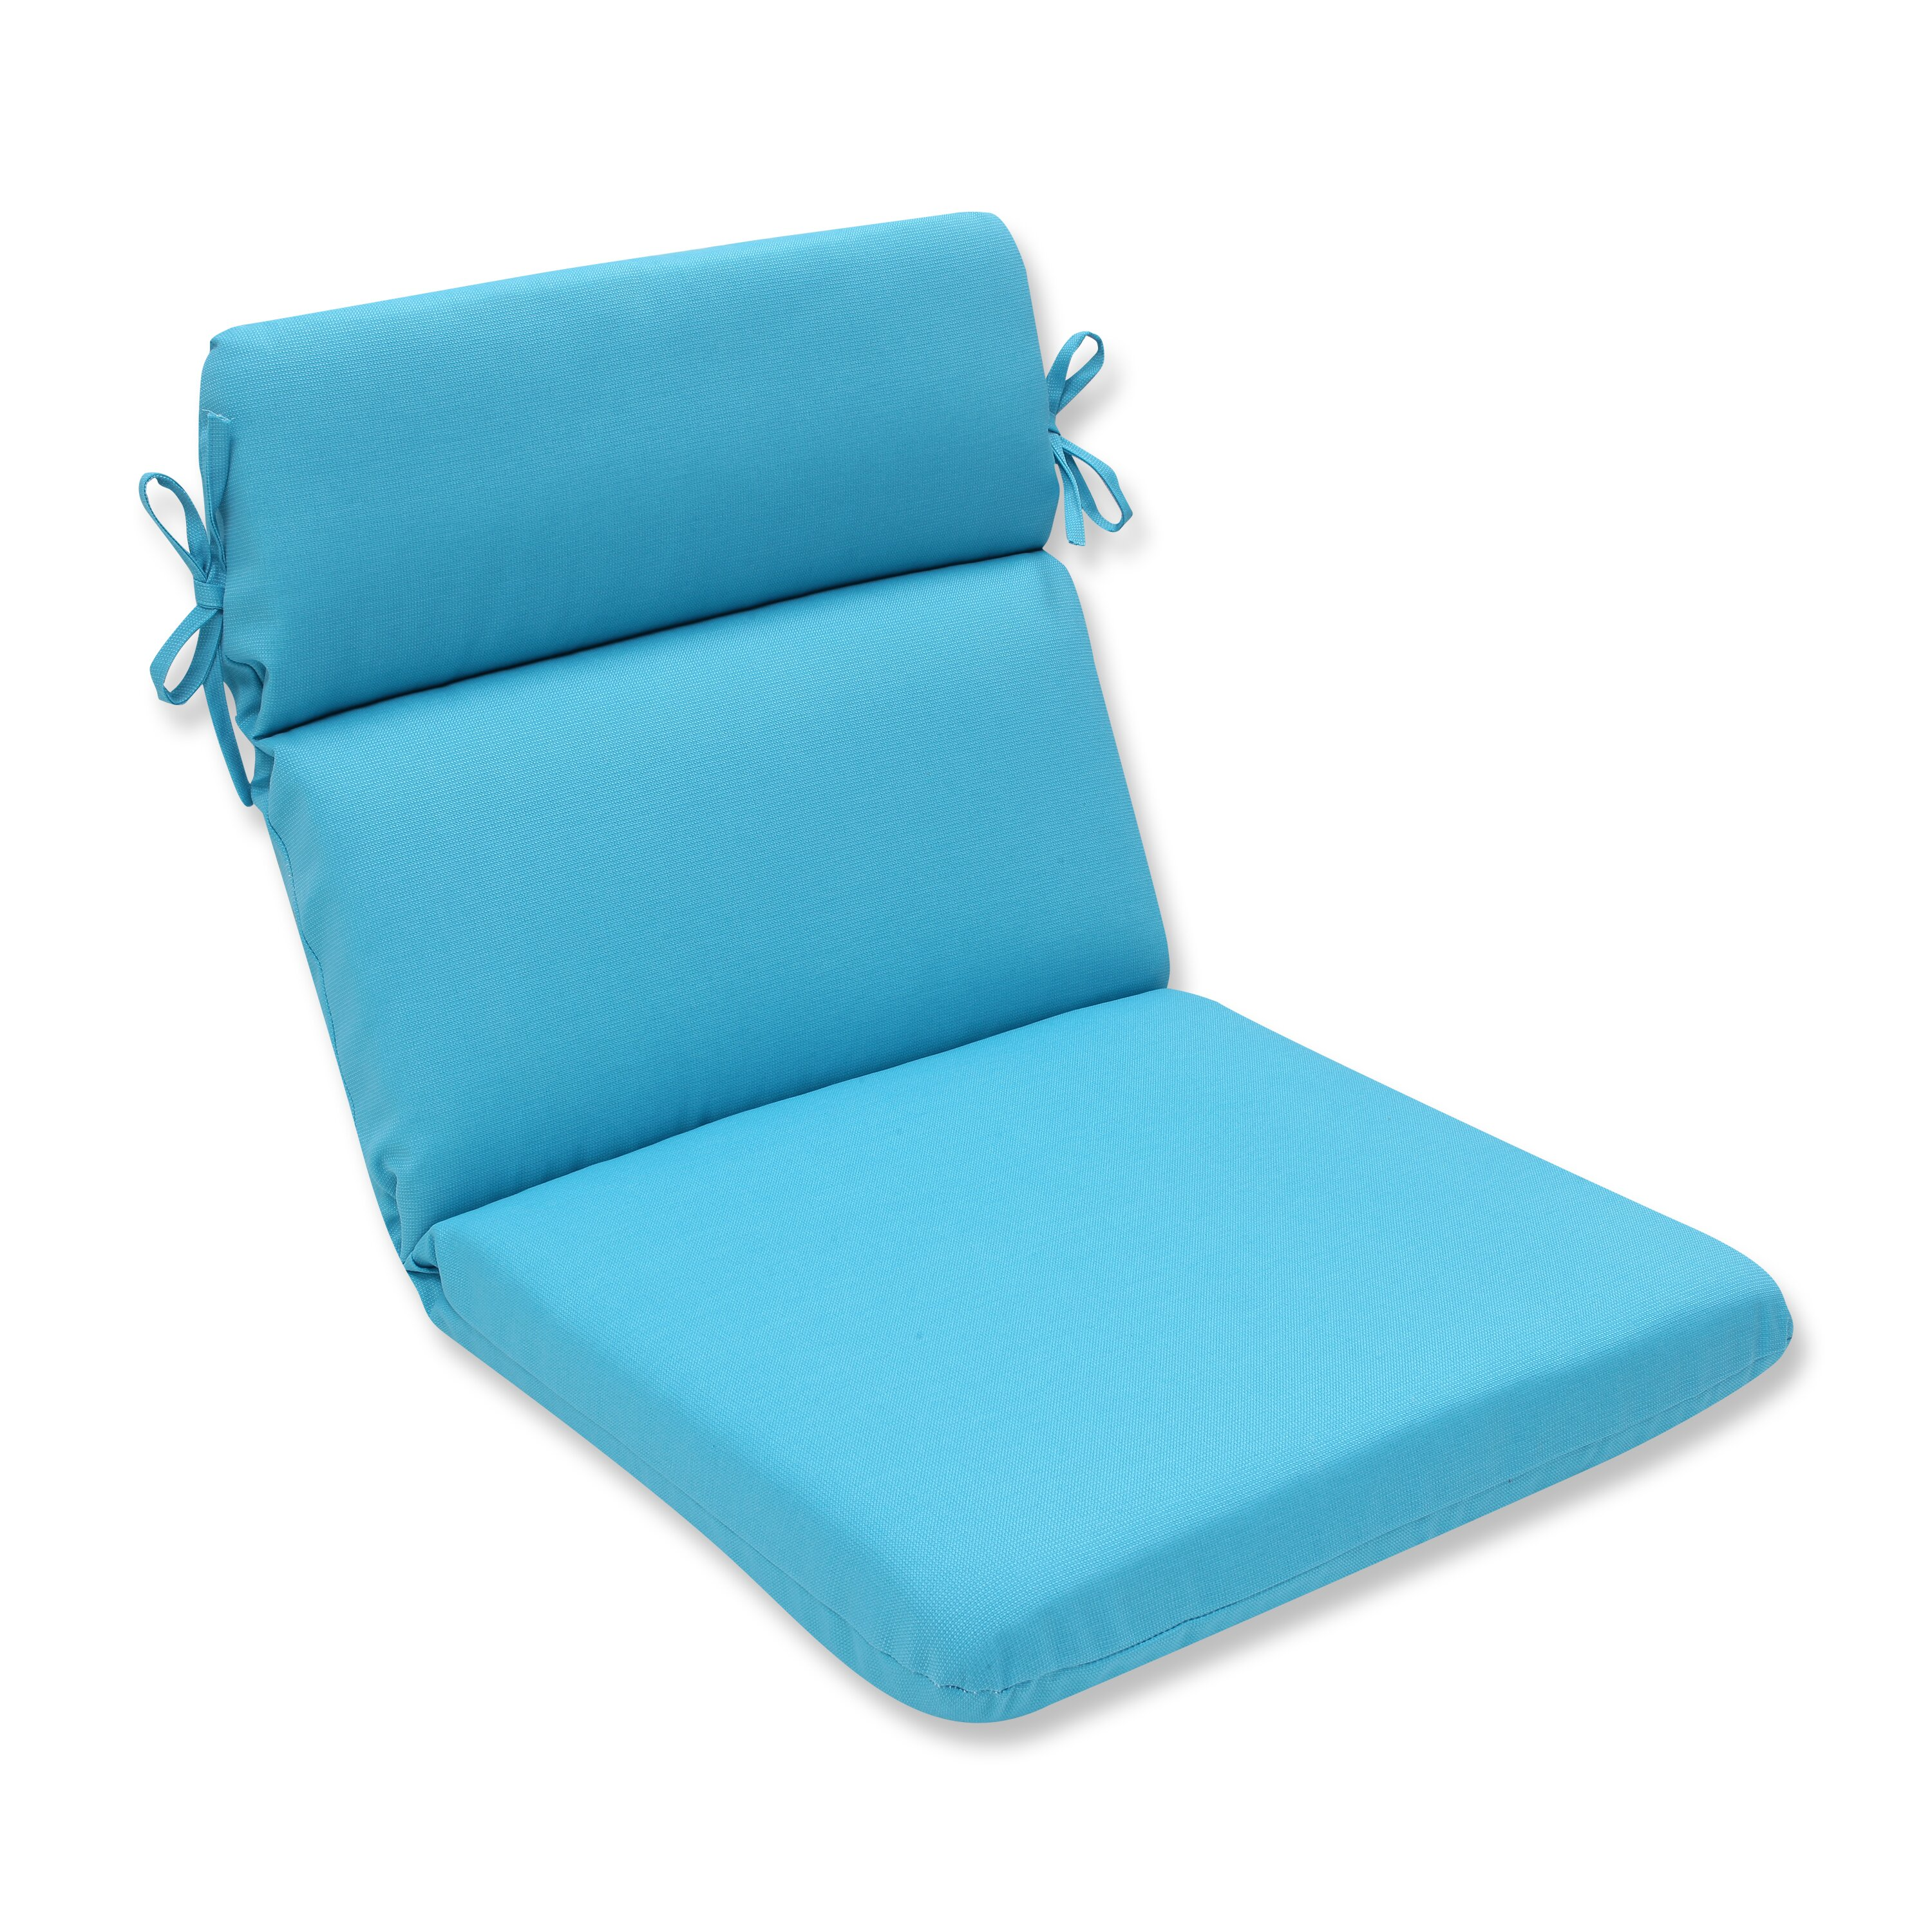 Pillow perfect veranda outdoor lounge chair cushion wayfair for Chair pillow